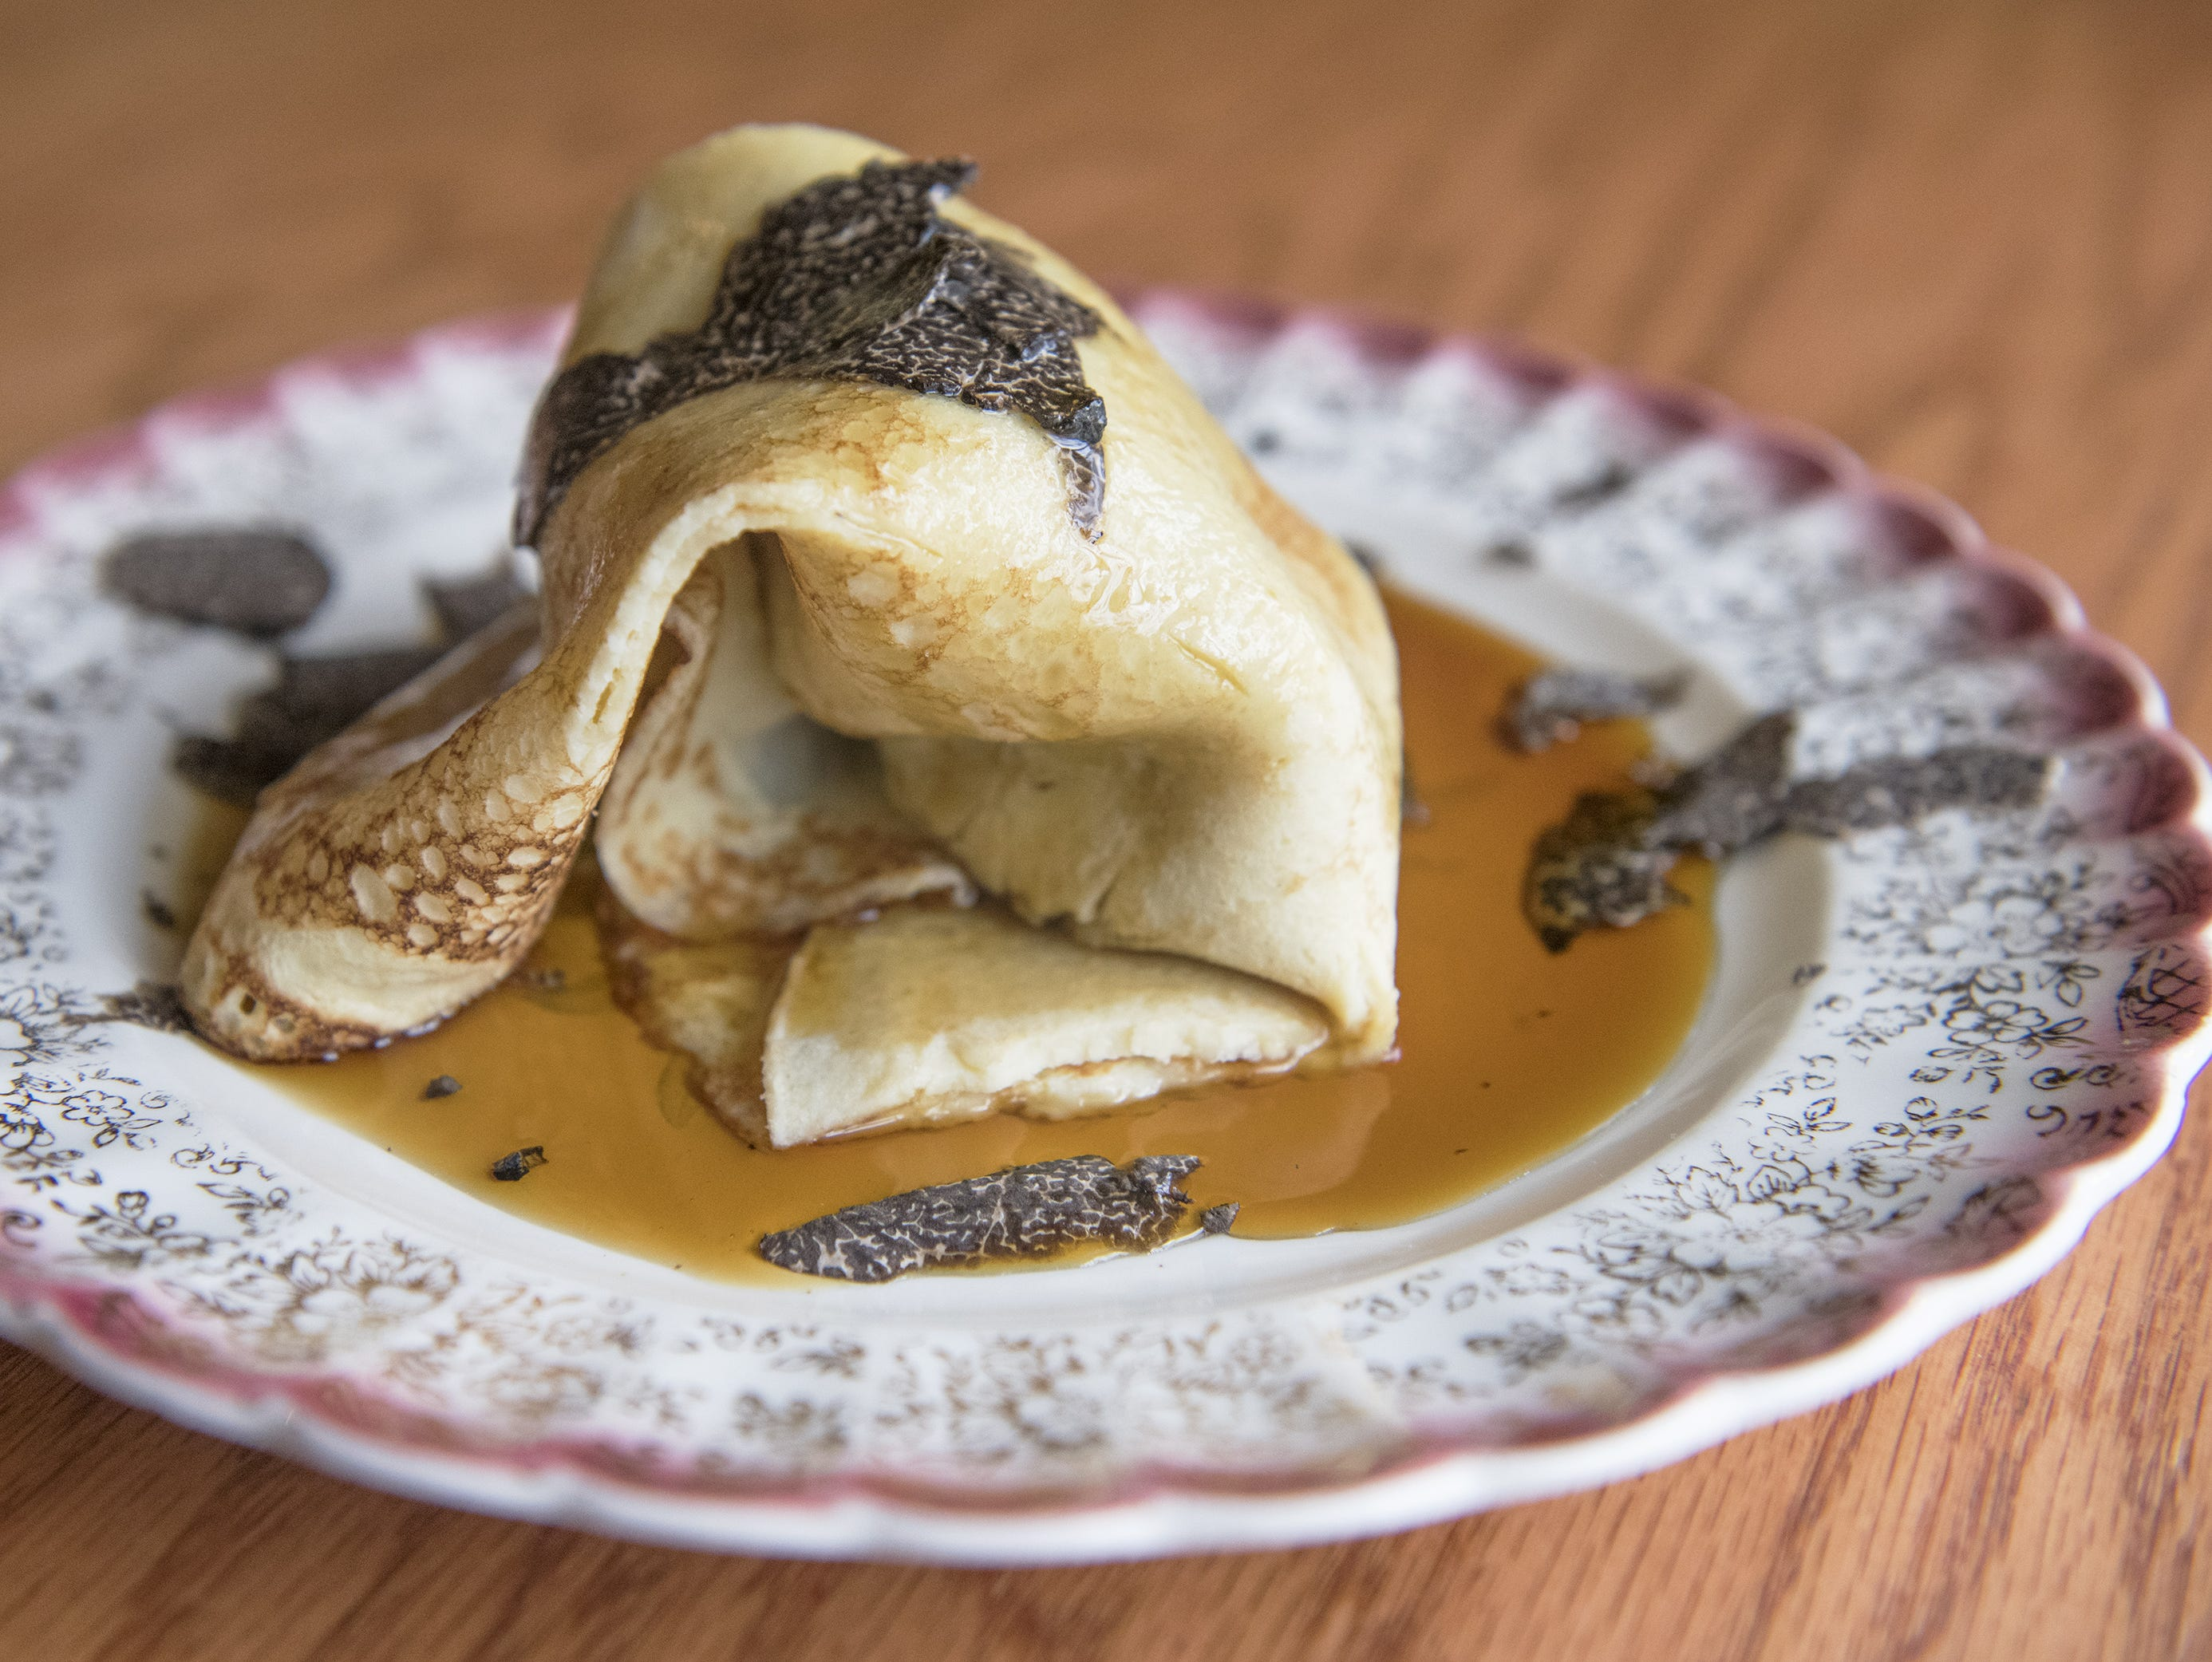 French rolled crepe with foie gras, New Jersey red maple syrup, and Perigord winter truffles is displayed at Park Place Cafe & Restaurant in Merchantville,